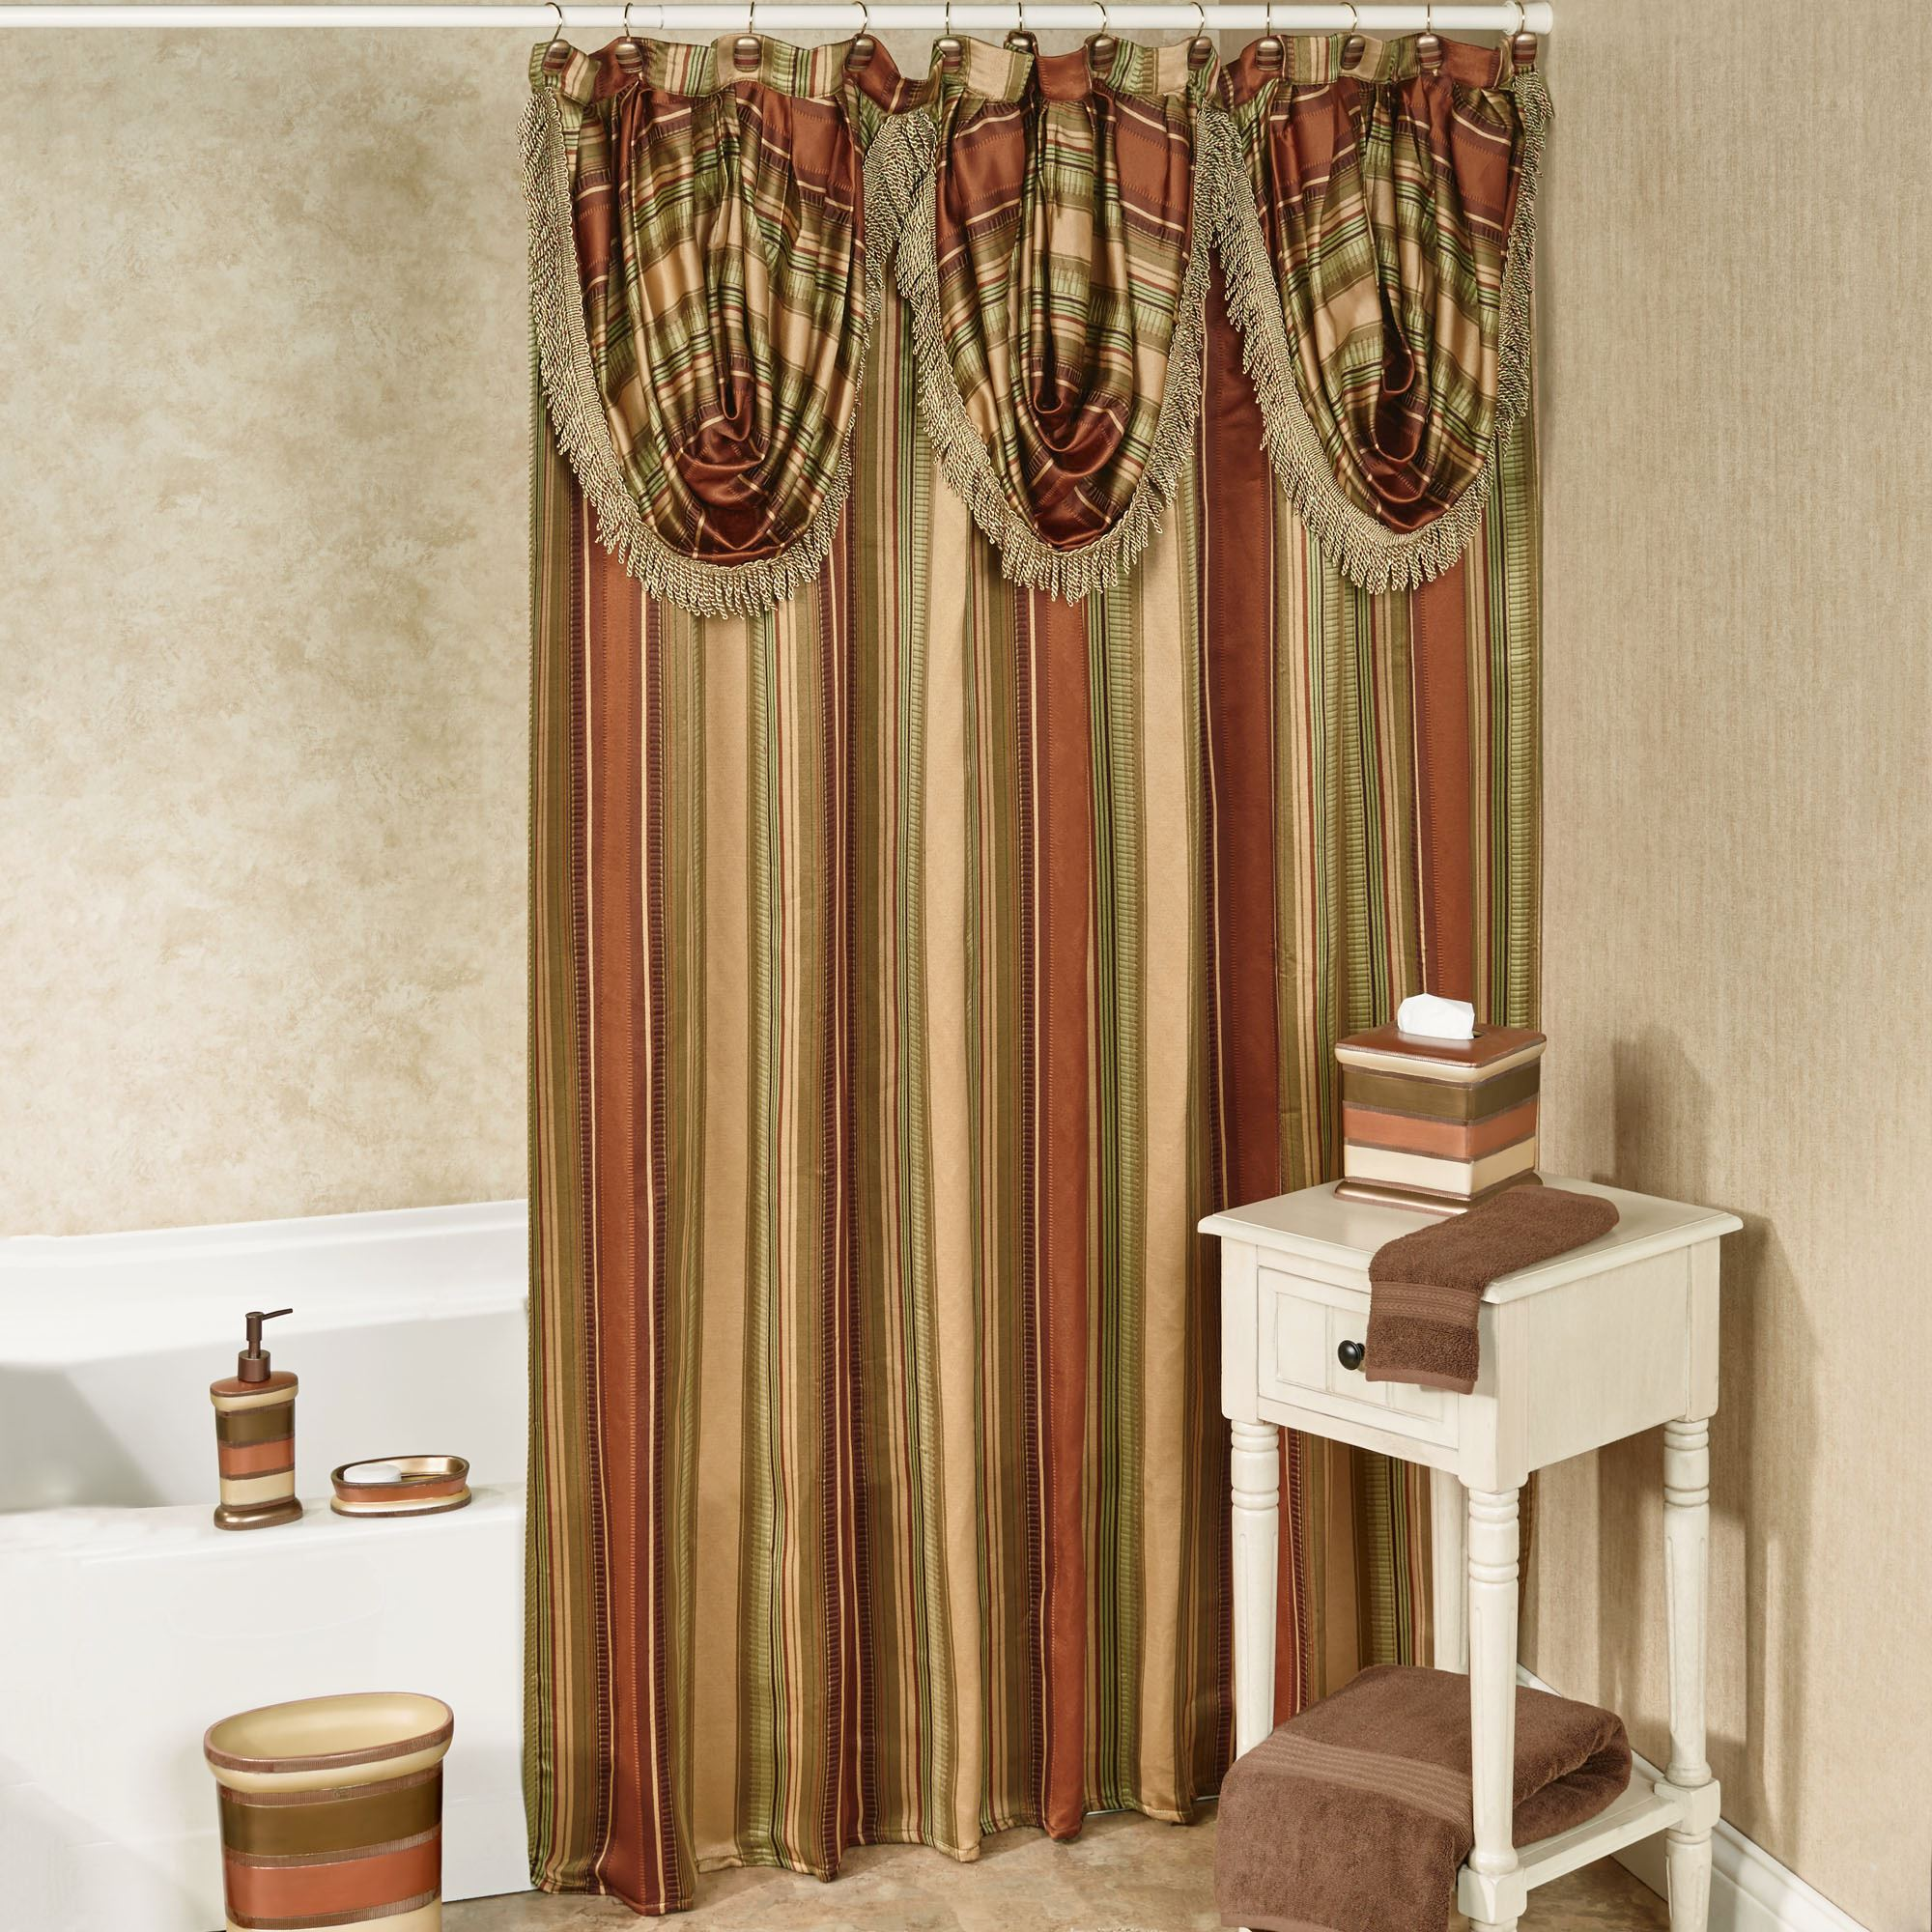 large swags and shower attached waverly living curtain ideas pattern cornice single size tiebacks with windows of double country for window incredible modern valances valance room swag curtains